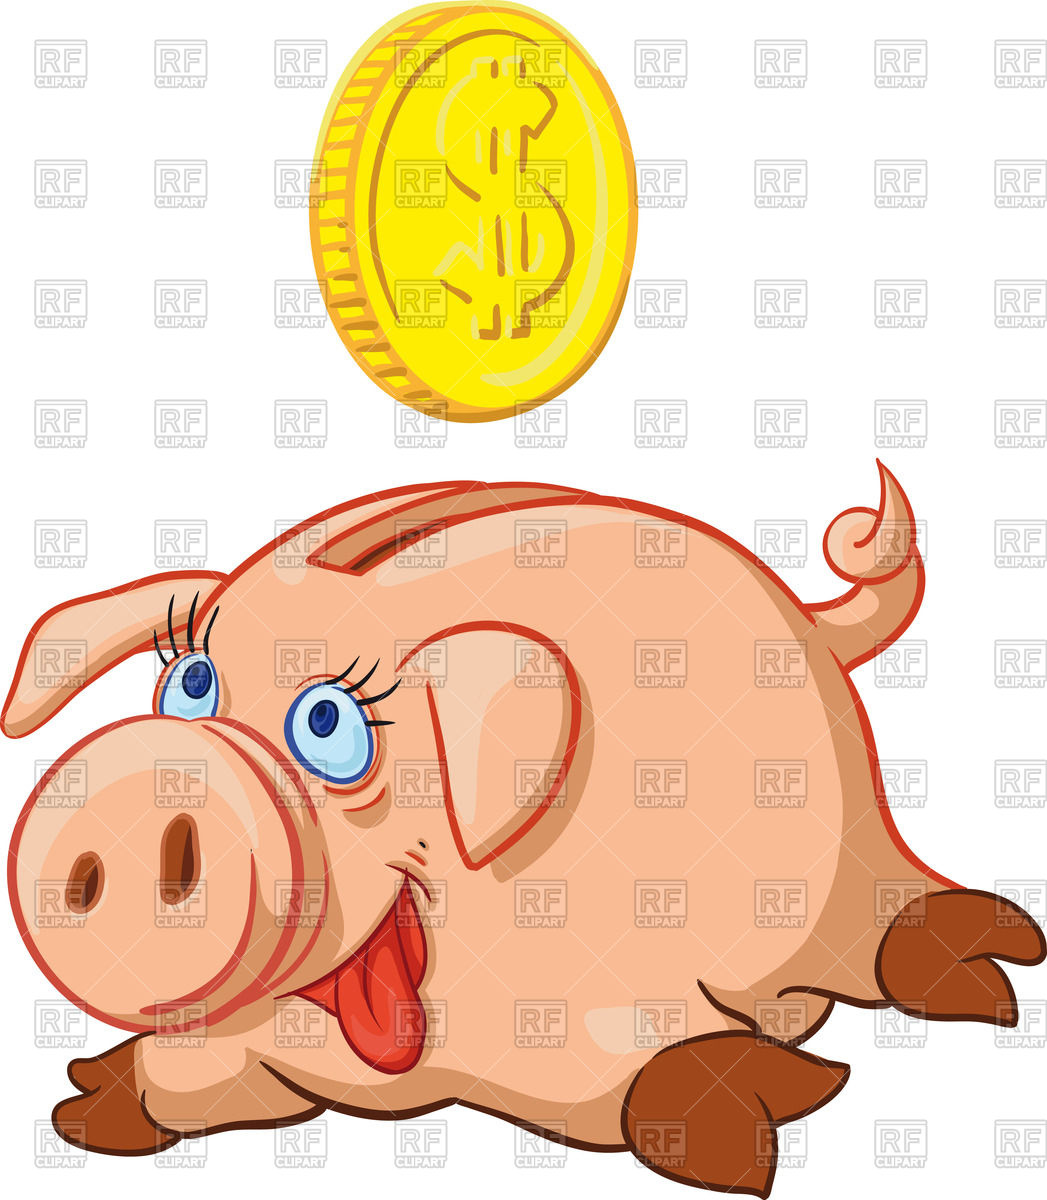 Piggy bank money clipart clipart black and white stock Happy pig piggy bank full of money Vector Image #67739 – RFclipart clipart black and white stock